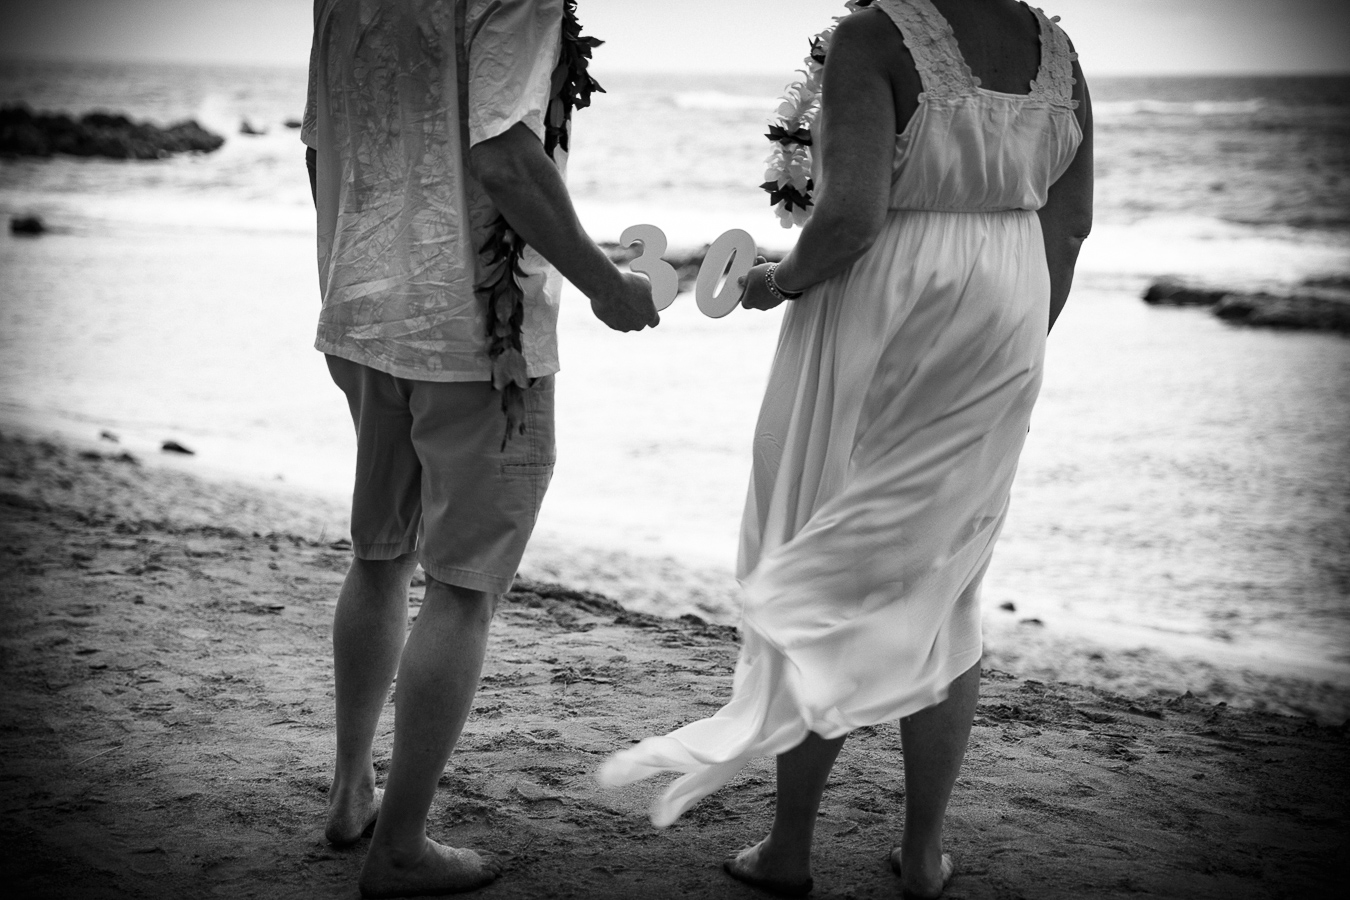 We often talk about and look at our picture book from our time in Maui and our special 30th wedding anniversary. What a great trip we had and wonderful pictures to remember that special day!   - Theresa